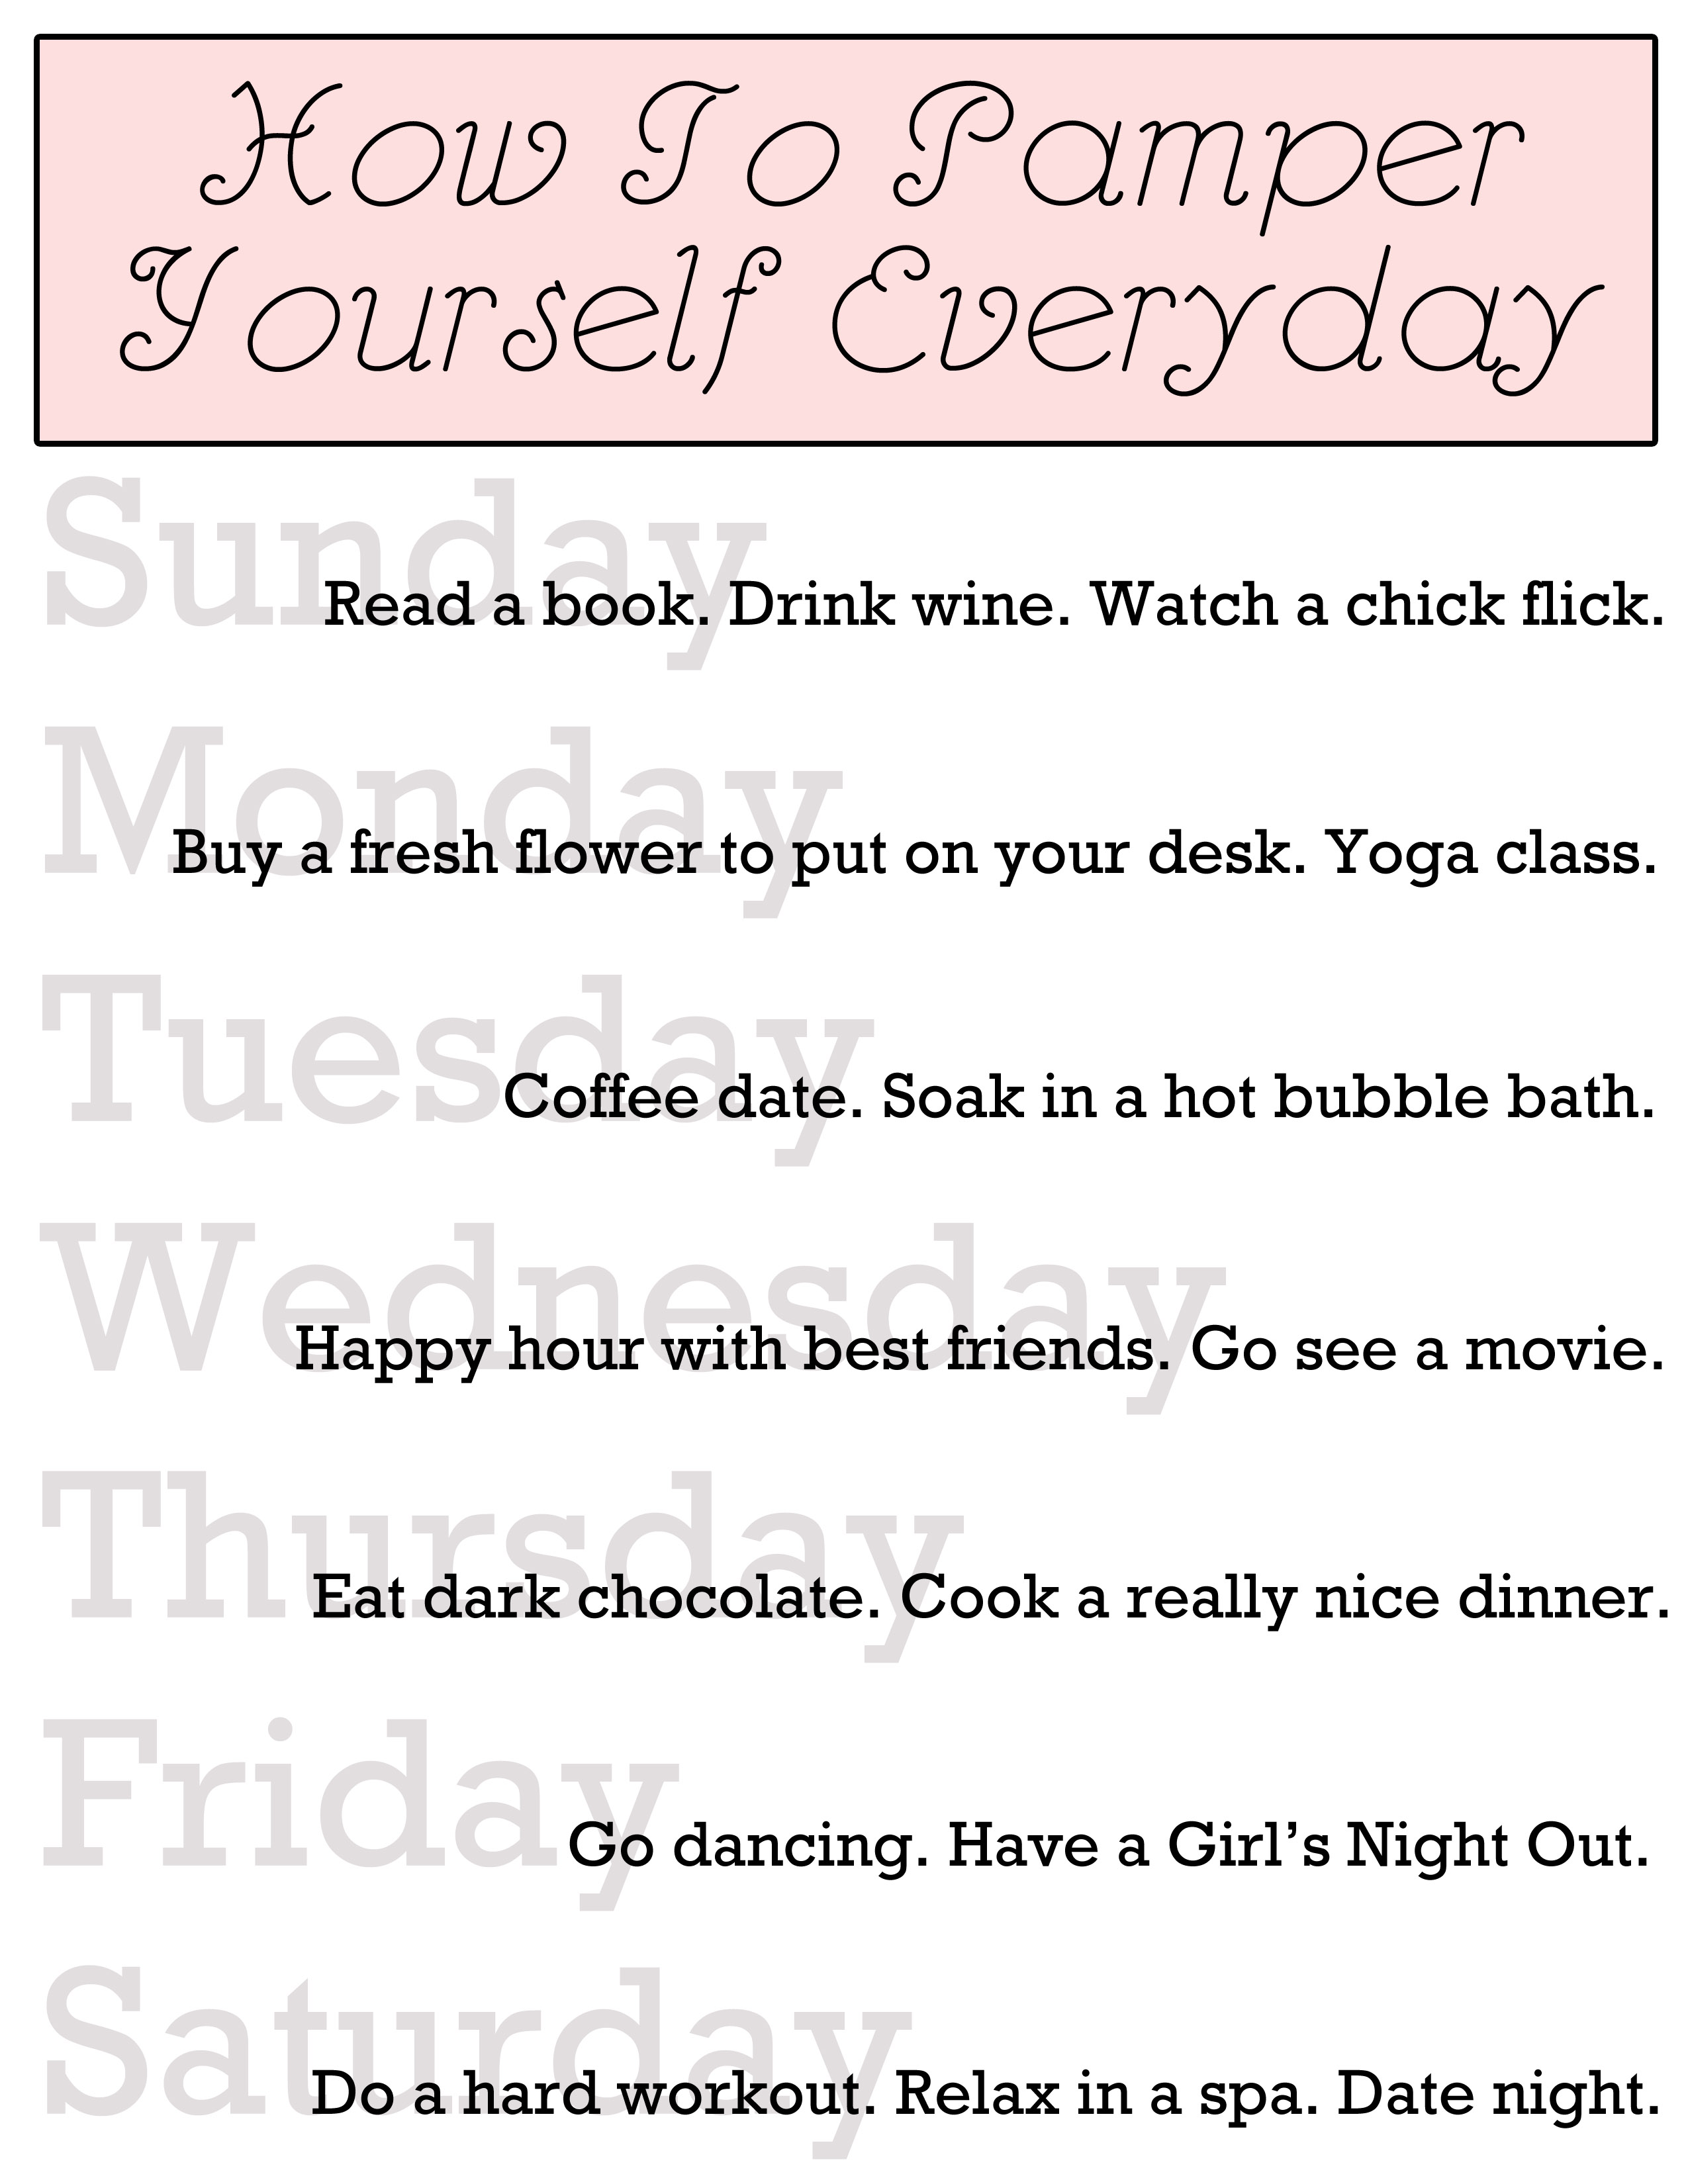 pamper yourself quotes quotesgram